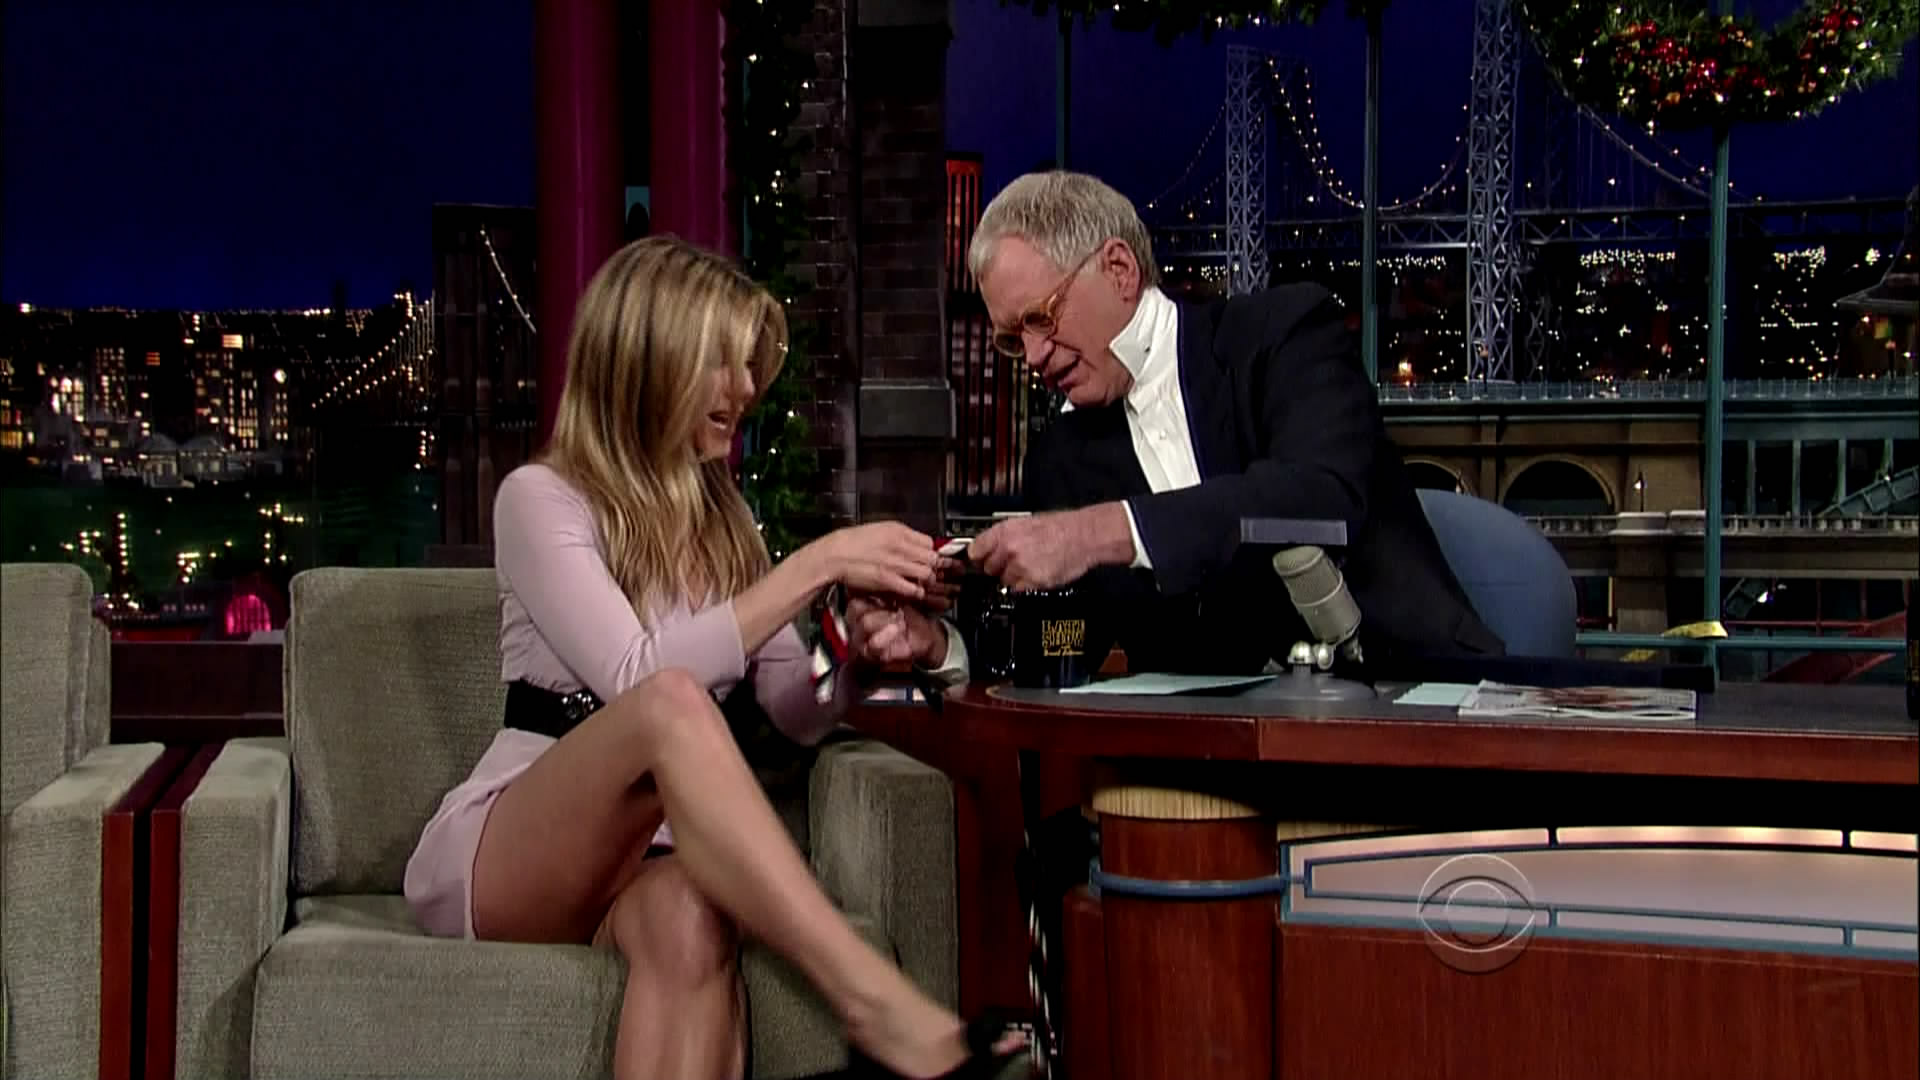 You Missed It! Cringy David Letterman's Interview With Jennifer Aniston Released